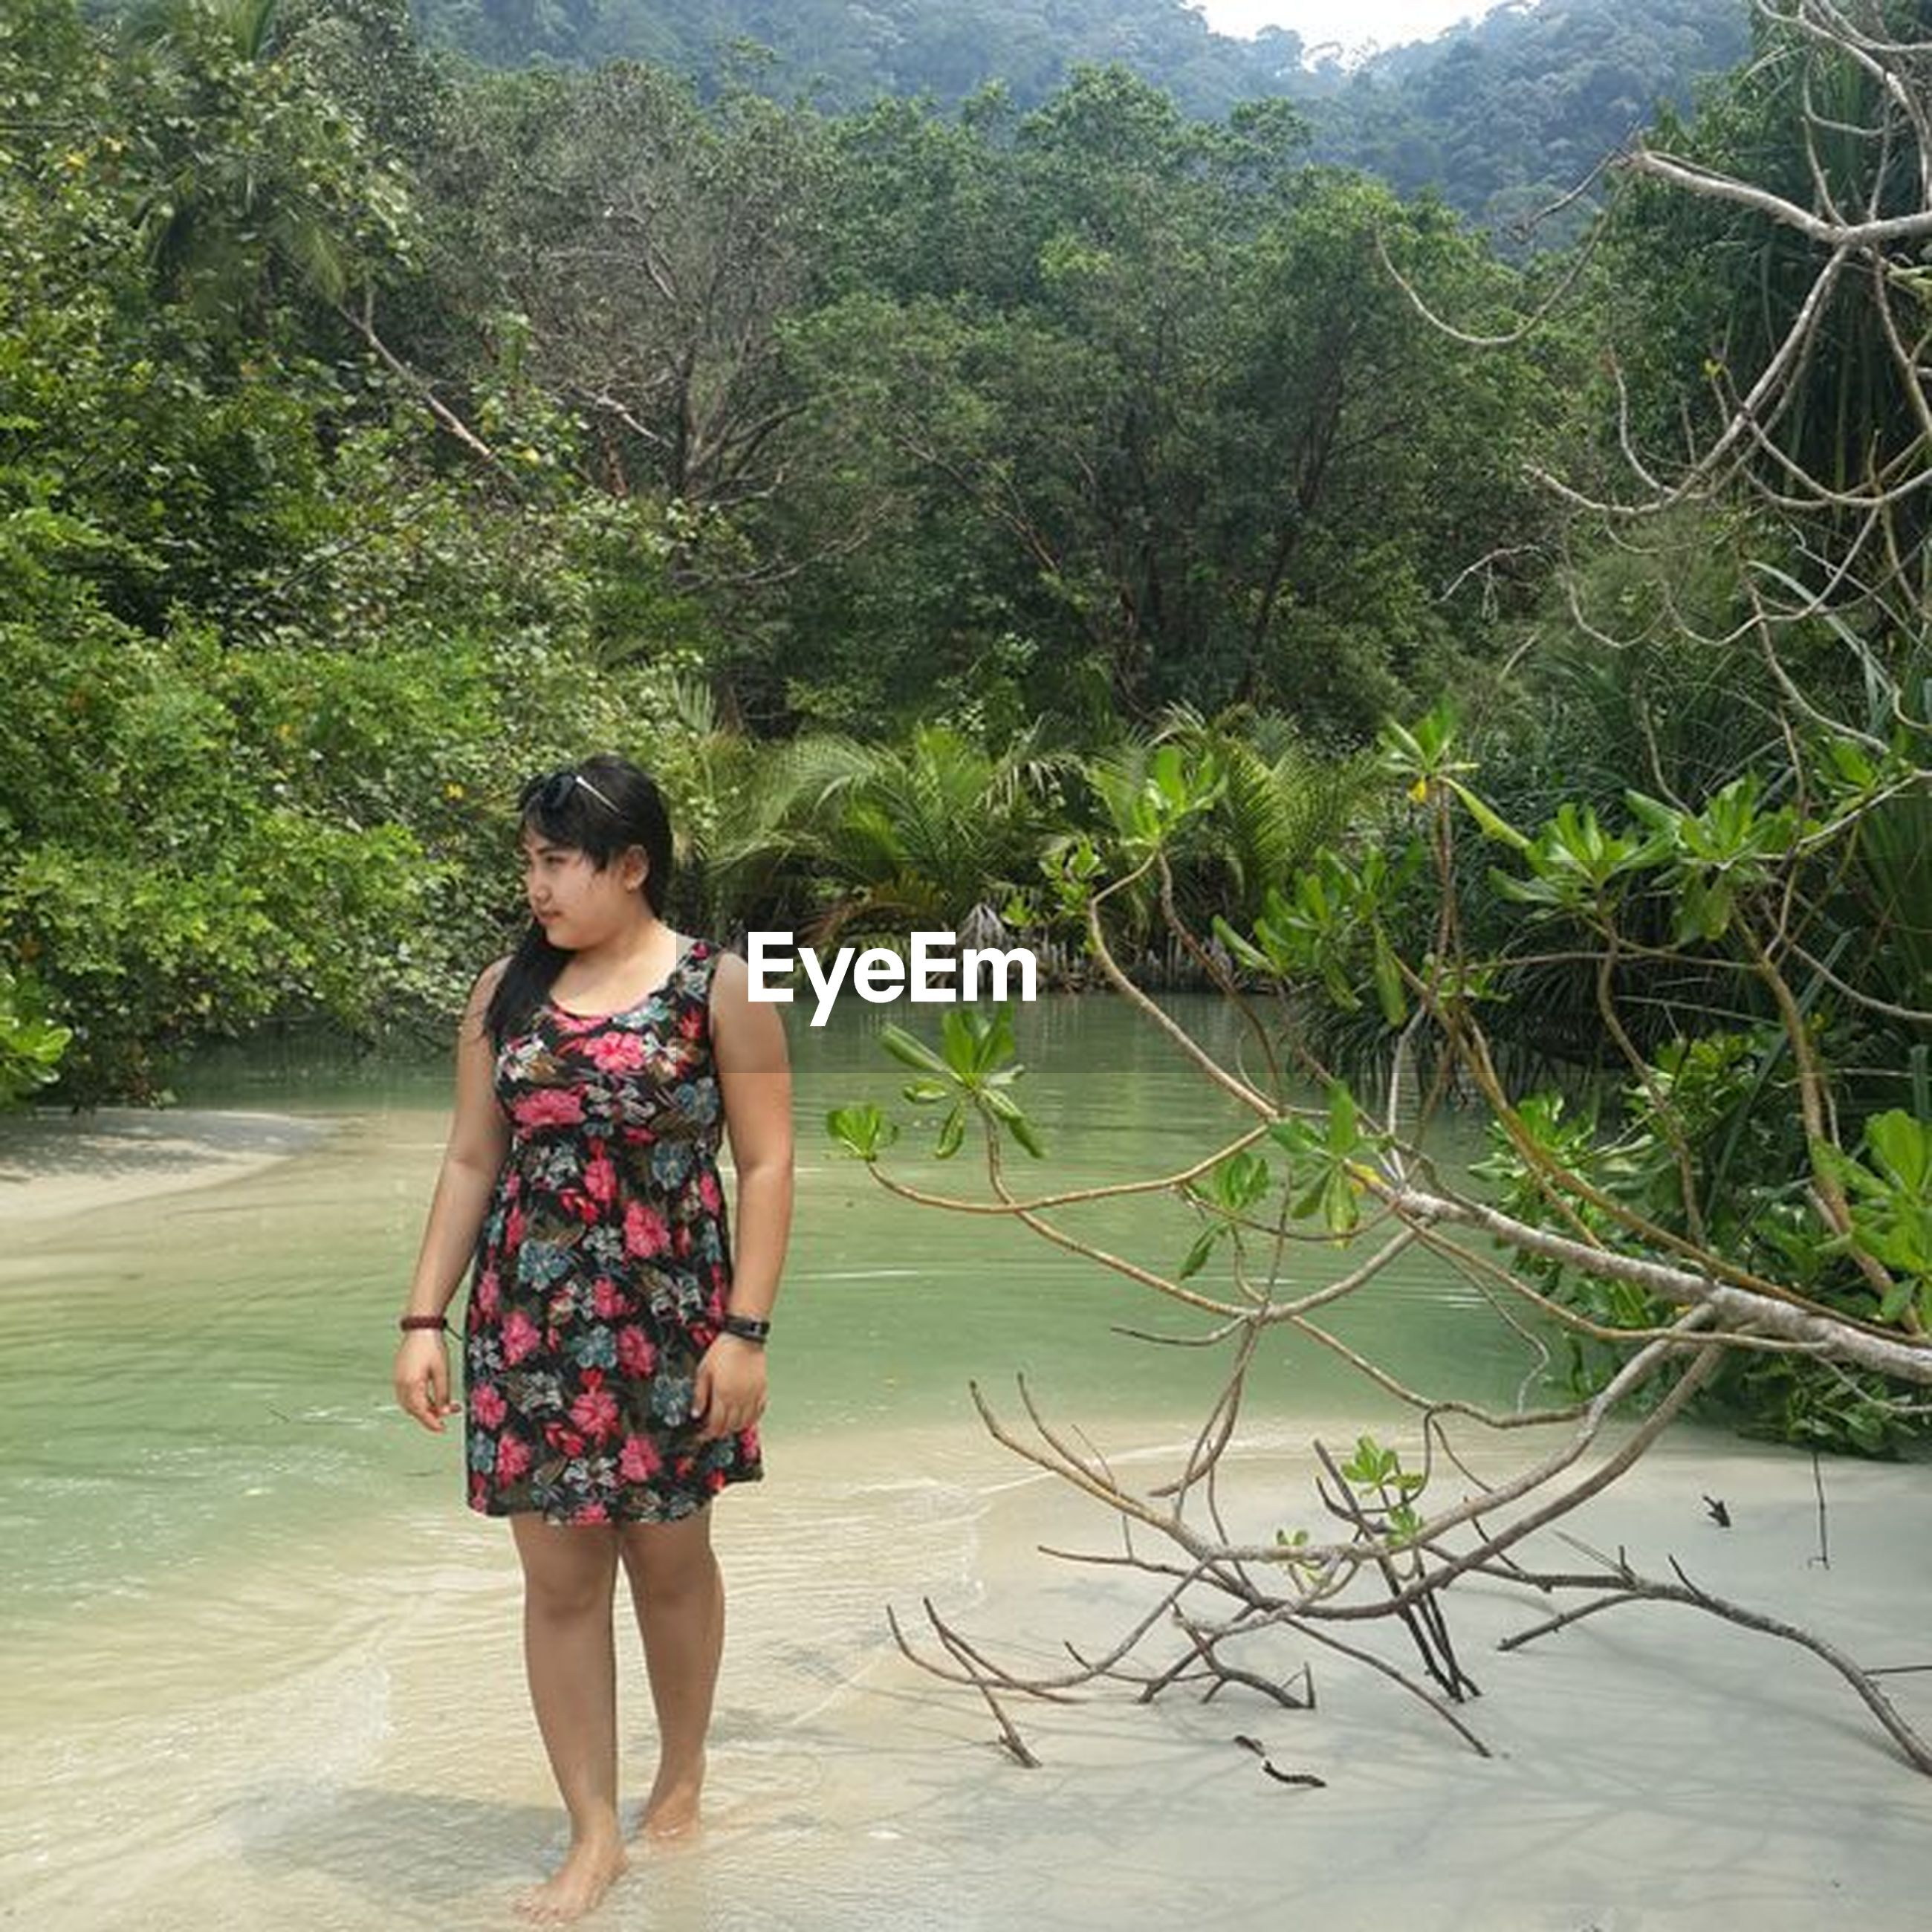 water, lifestyles, leisure activity, tree, casual clothing, full length, tranquility, lake, nature, beauty in nature, tranquil scene, standing, young adult, person, vacations, scenics, river, three quarter length